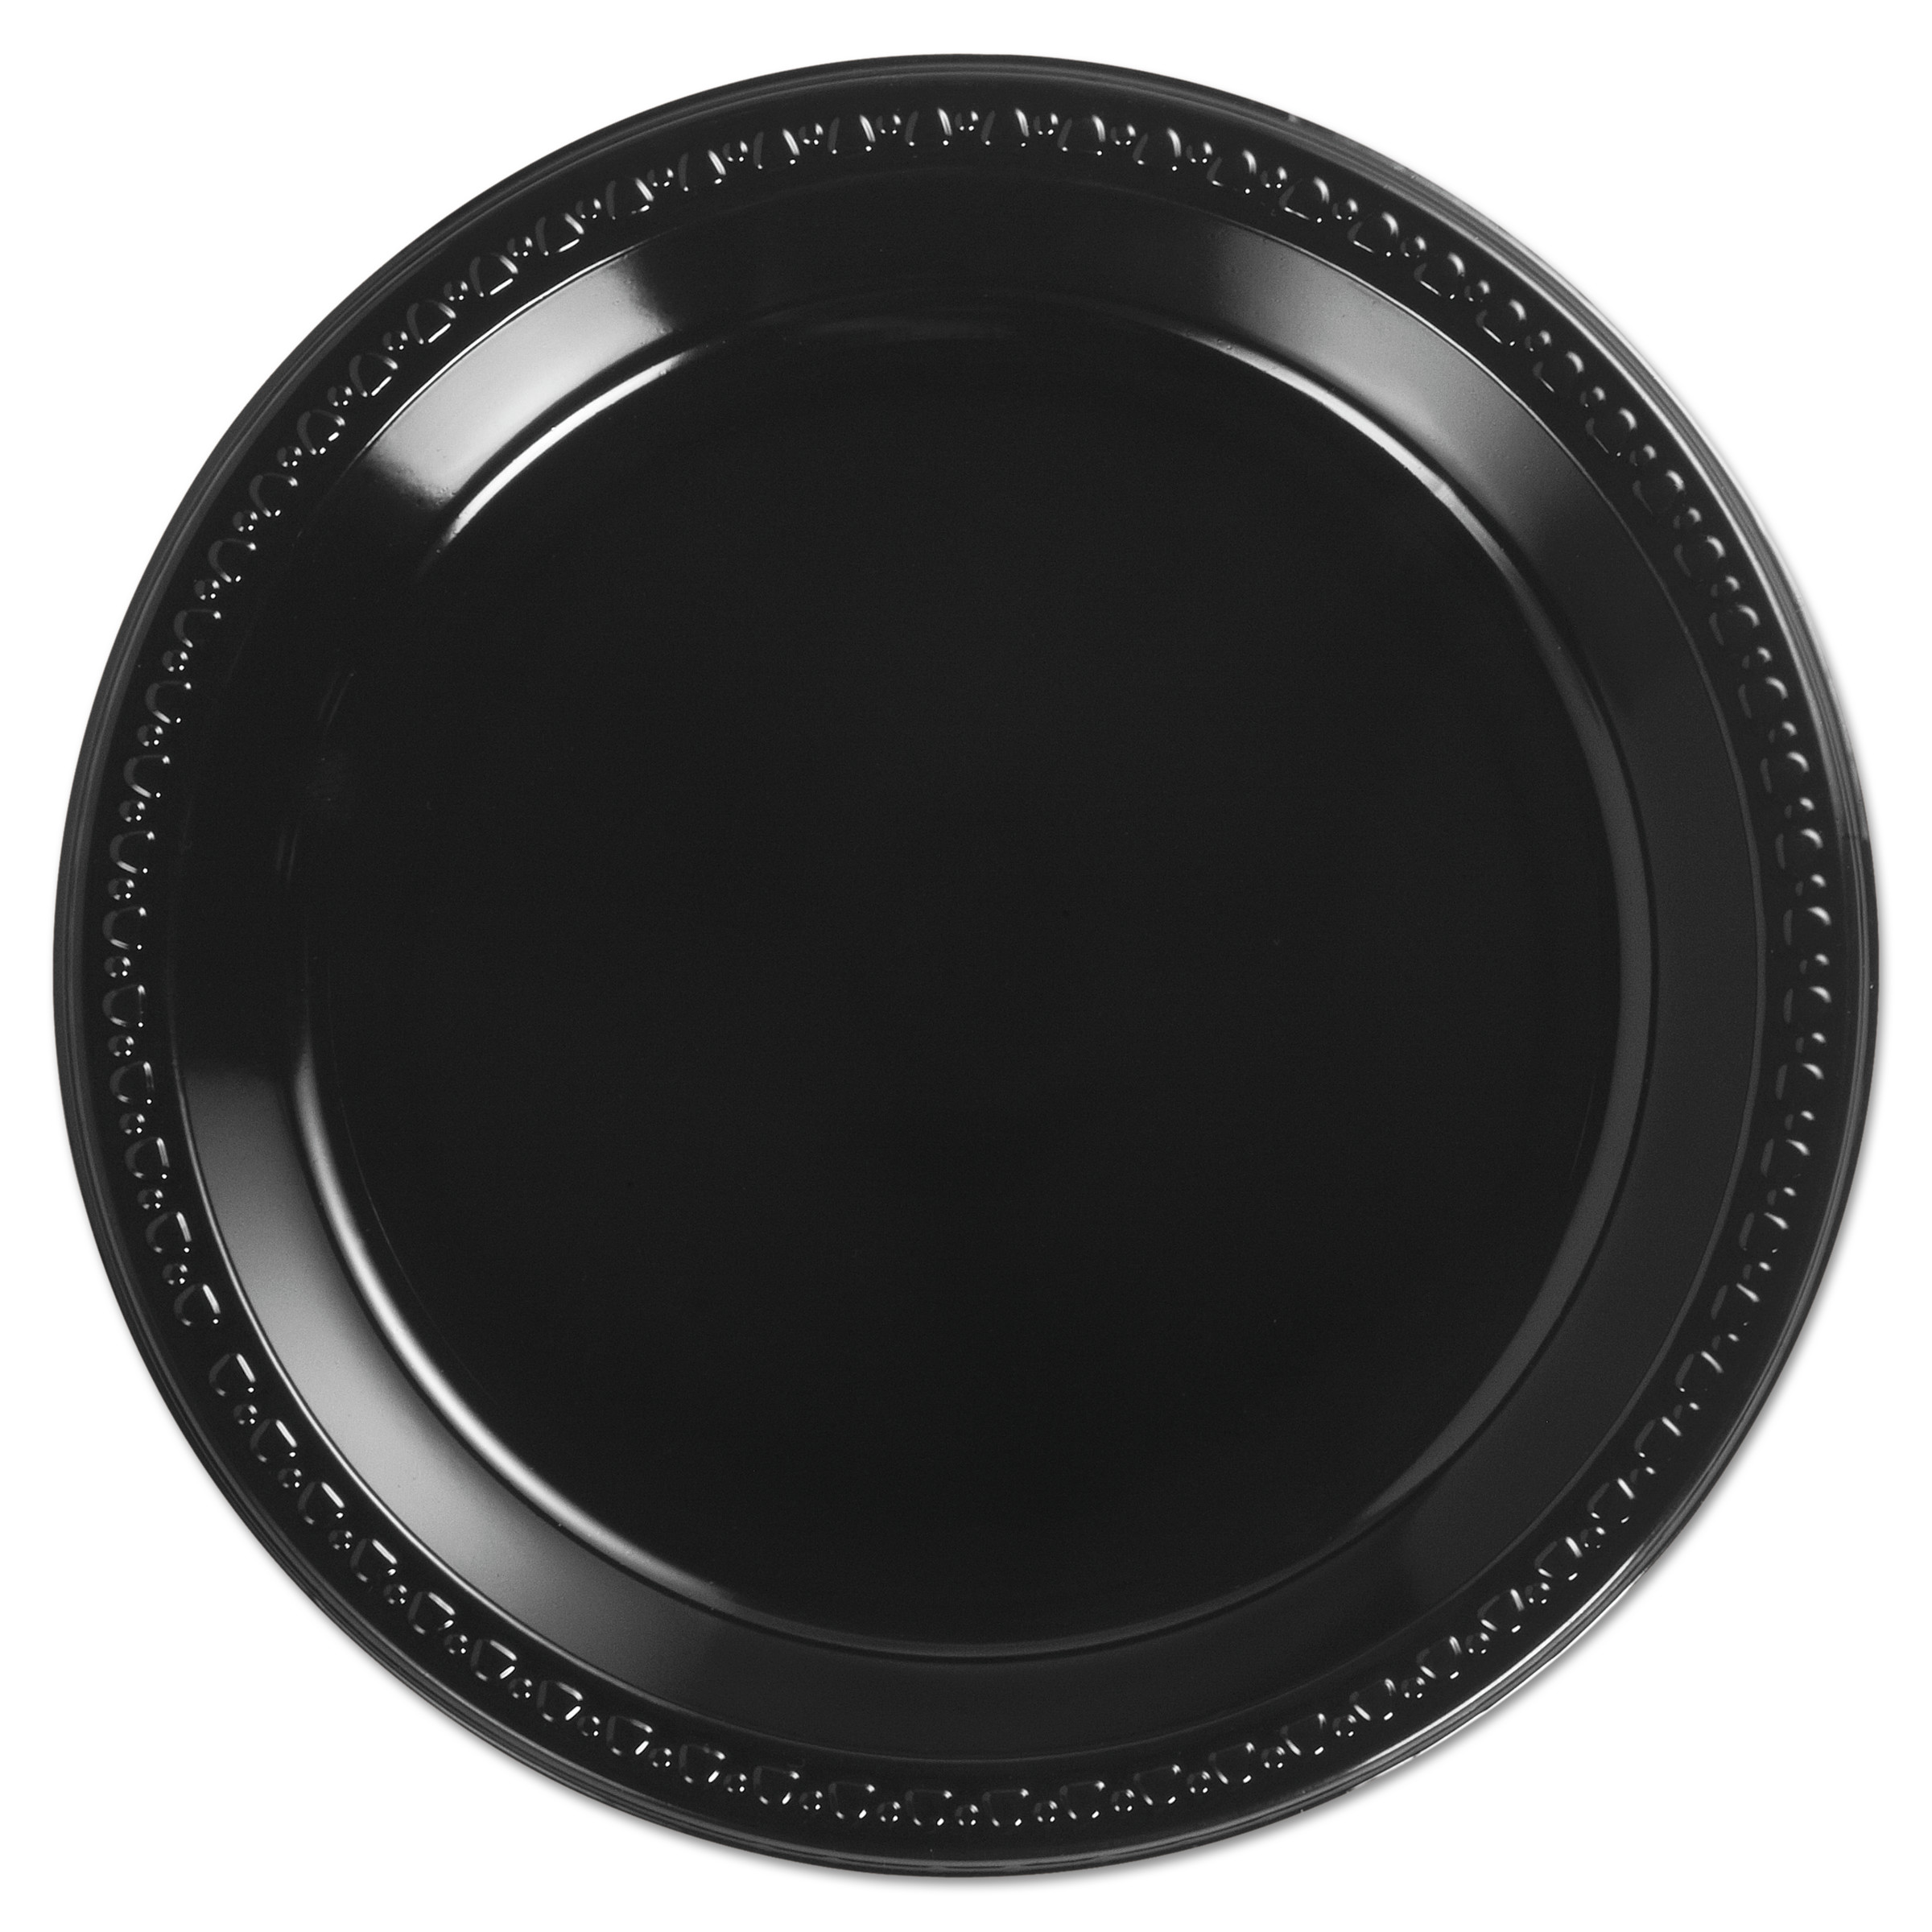 Chinet Heavyweight Plastic Plates 10 1/4 Inches Black Round  sc 1 st  Walmart.com & Chinet Heavyweight Plastic Plates 10 1/4 Inches Black Round ...